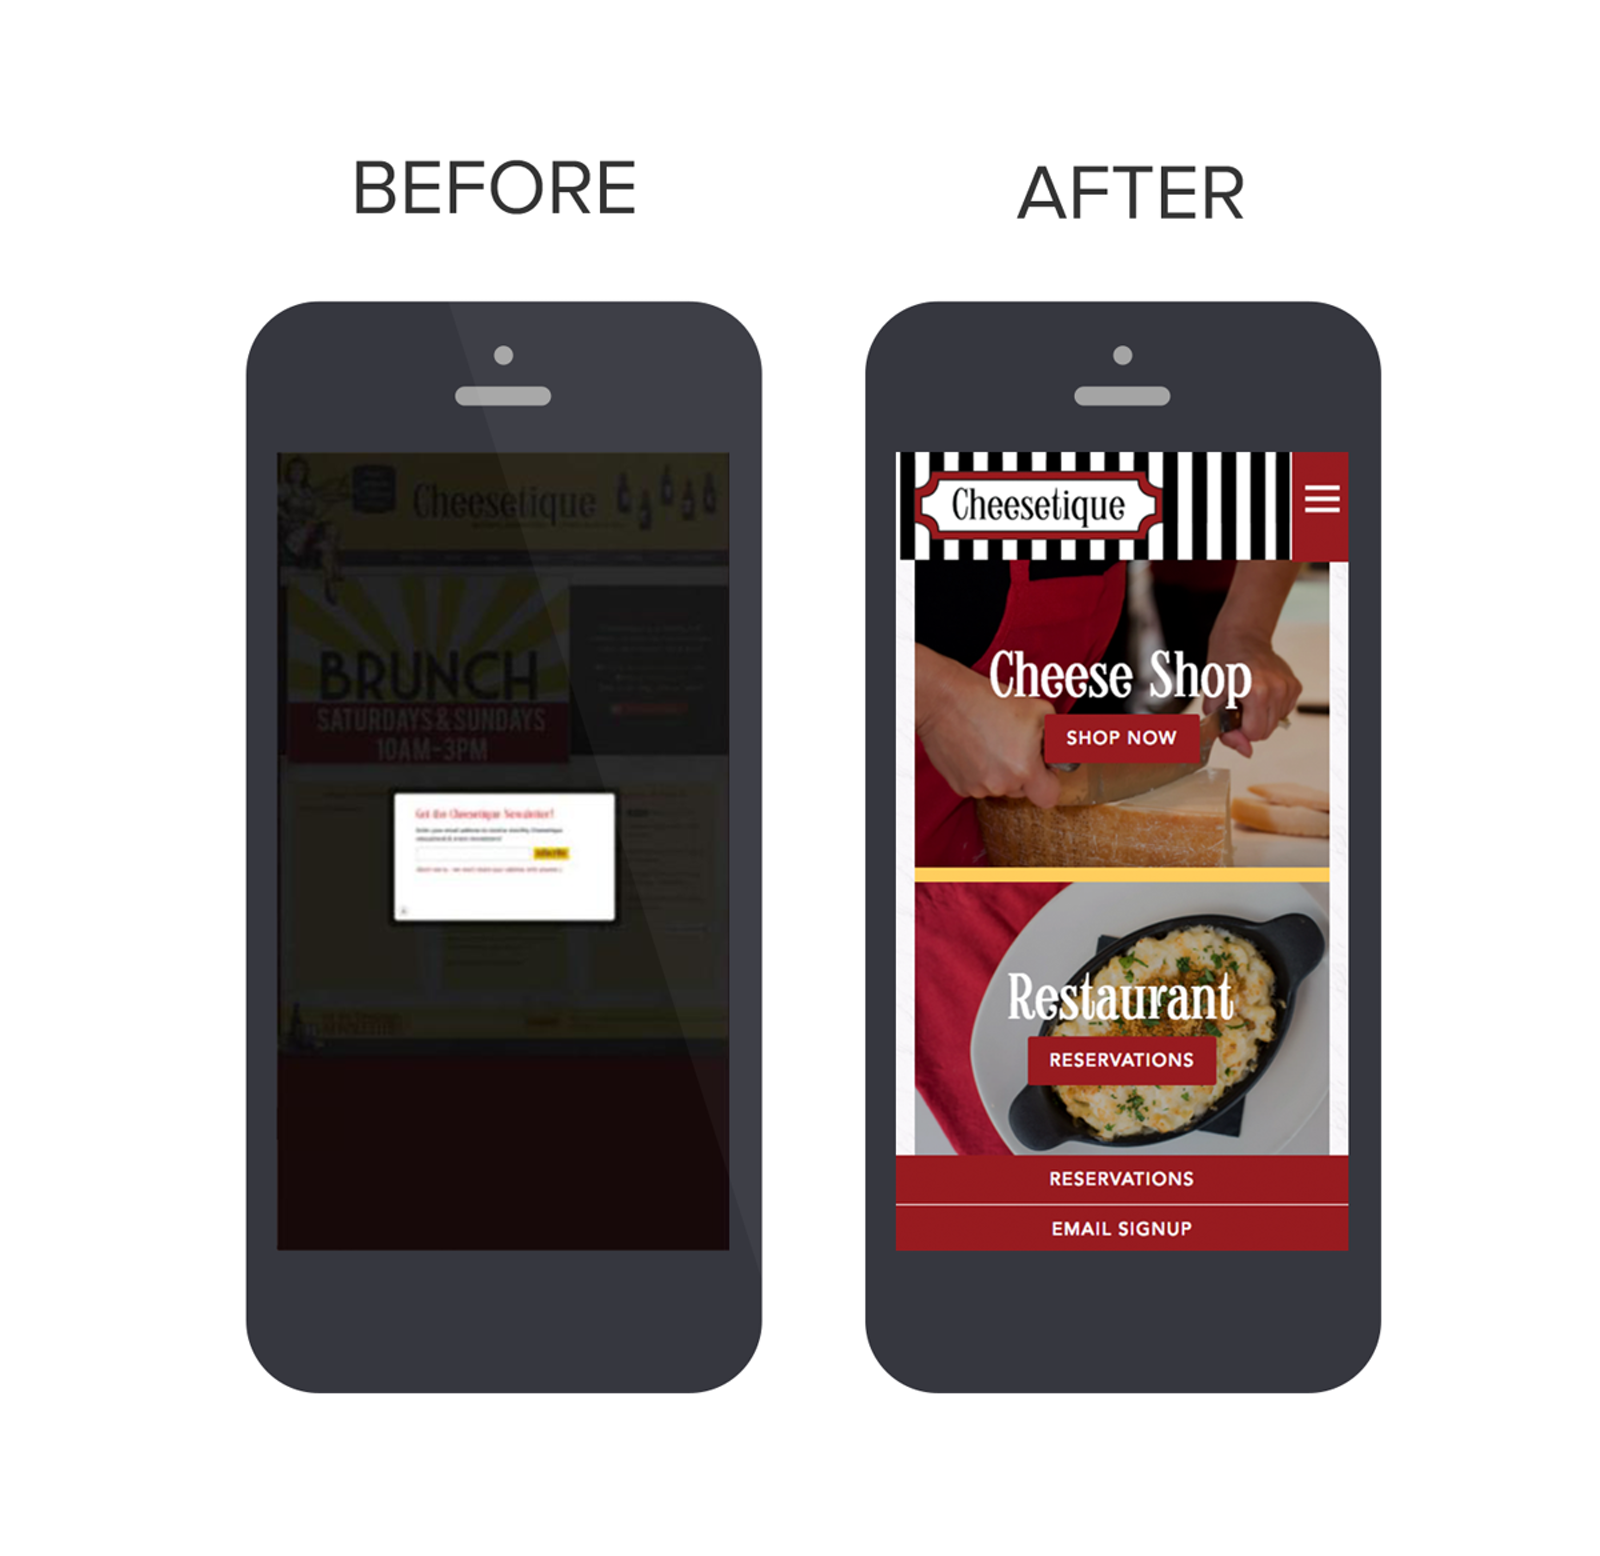 Cheestique's Website in Mobile Device: Before & After